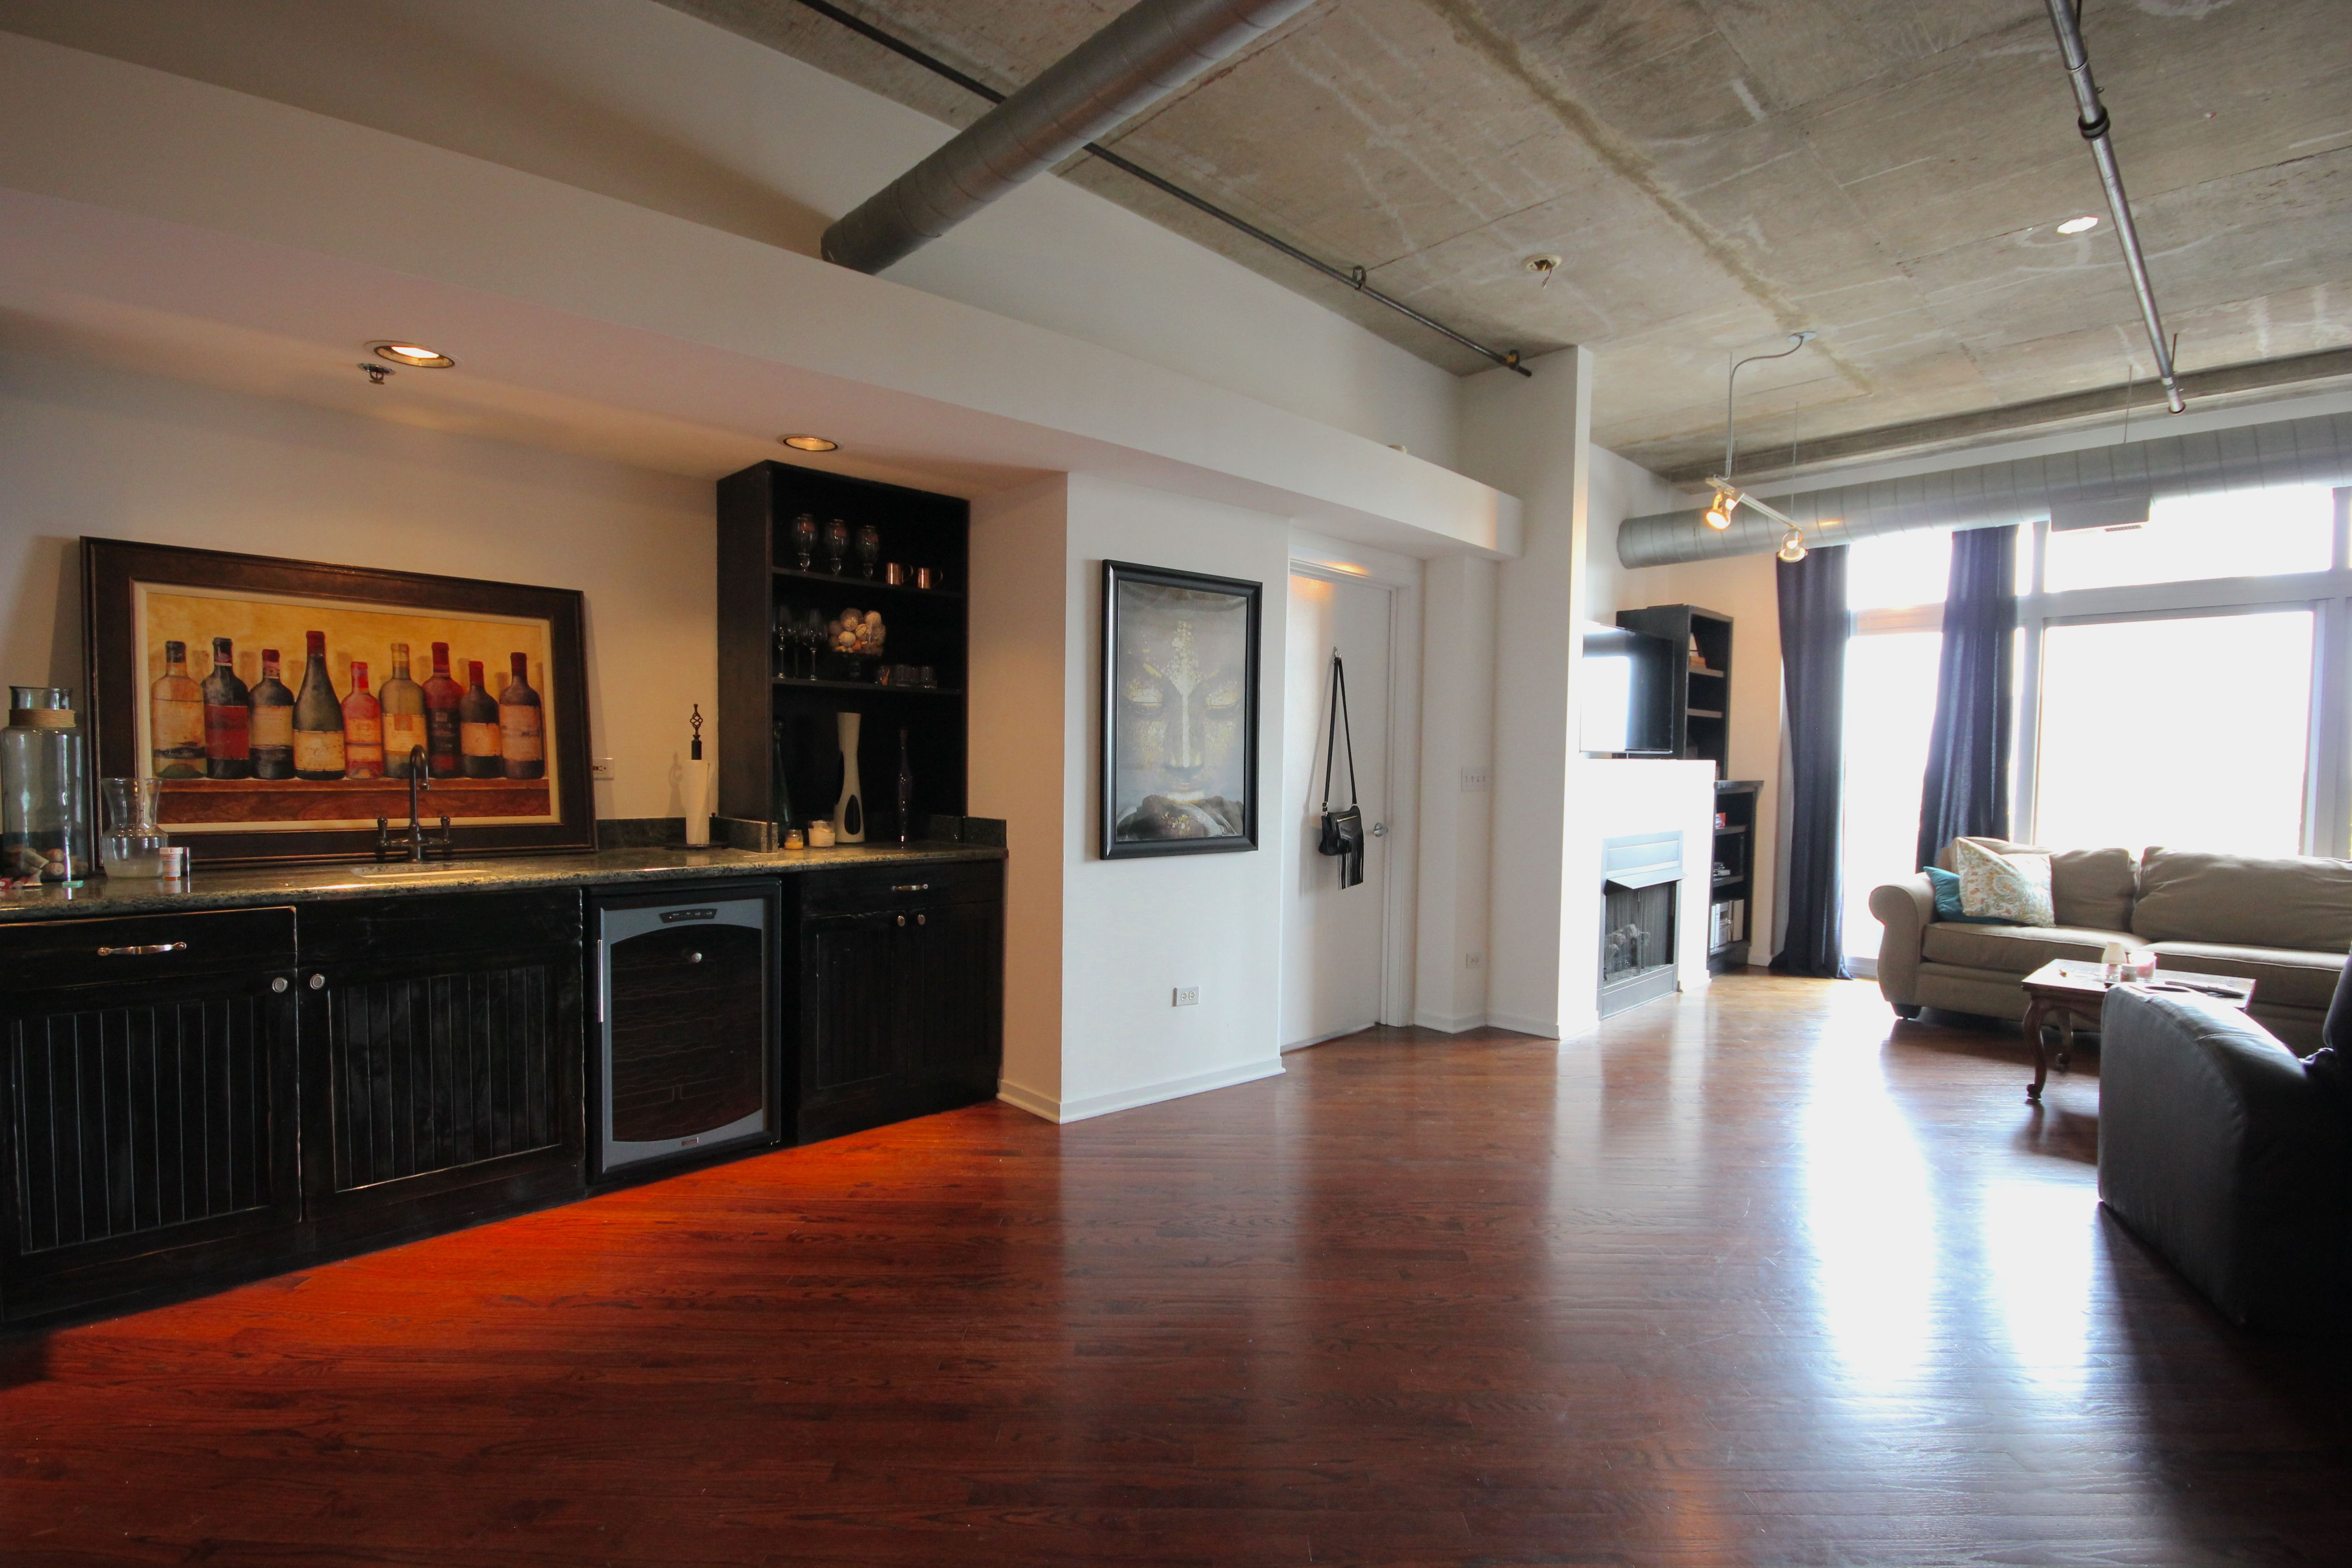 Lofts are 100 my favorite style open space high